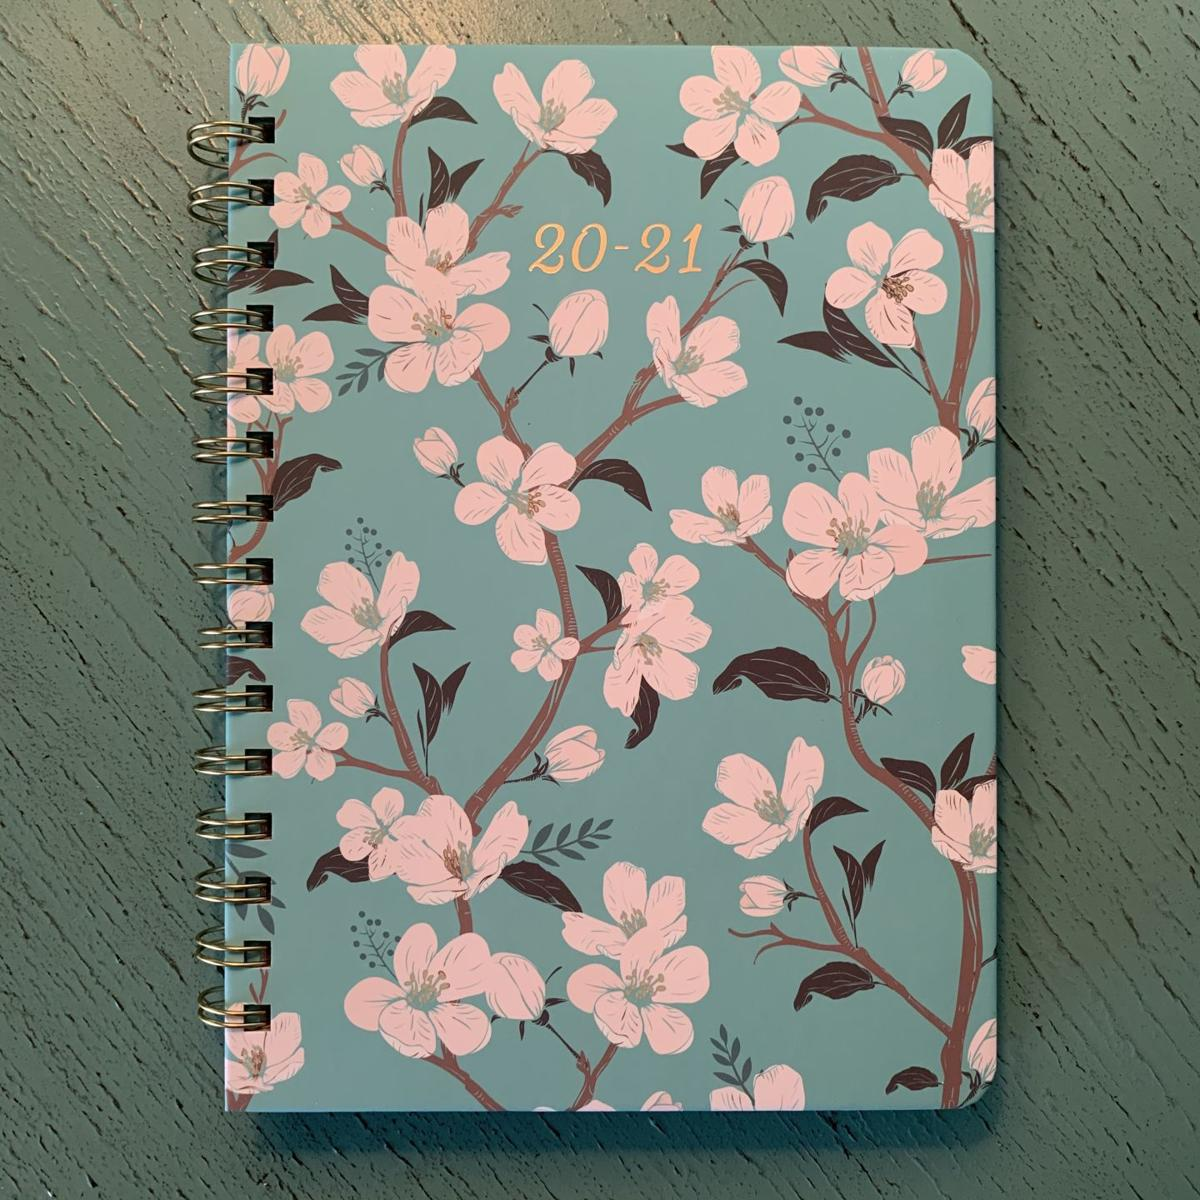 Midwest Magnolia new planner